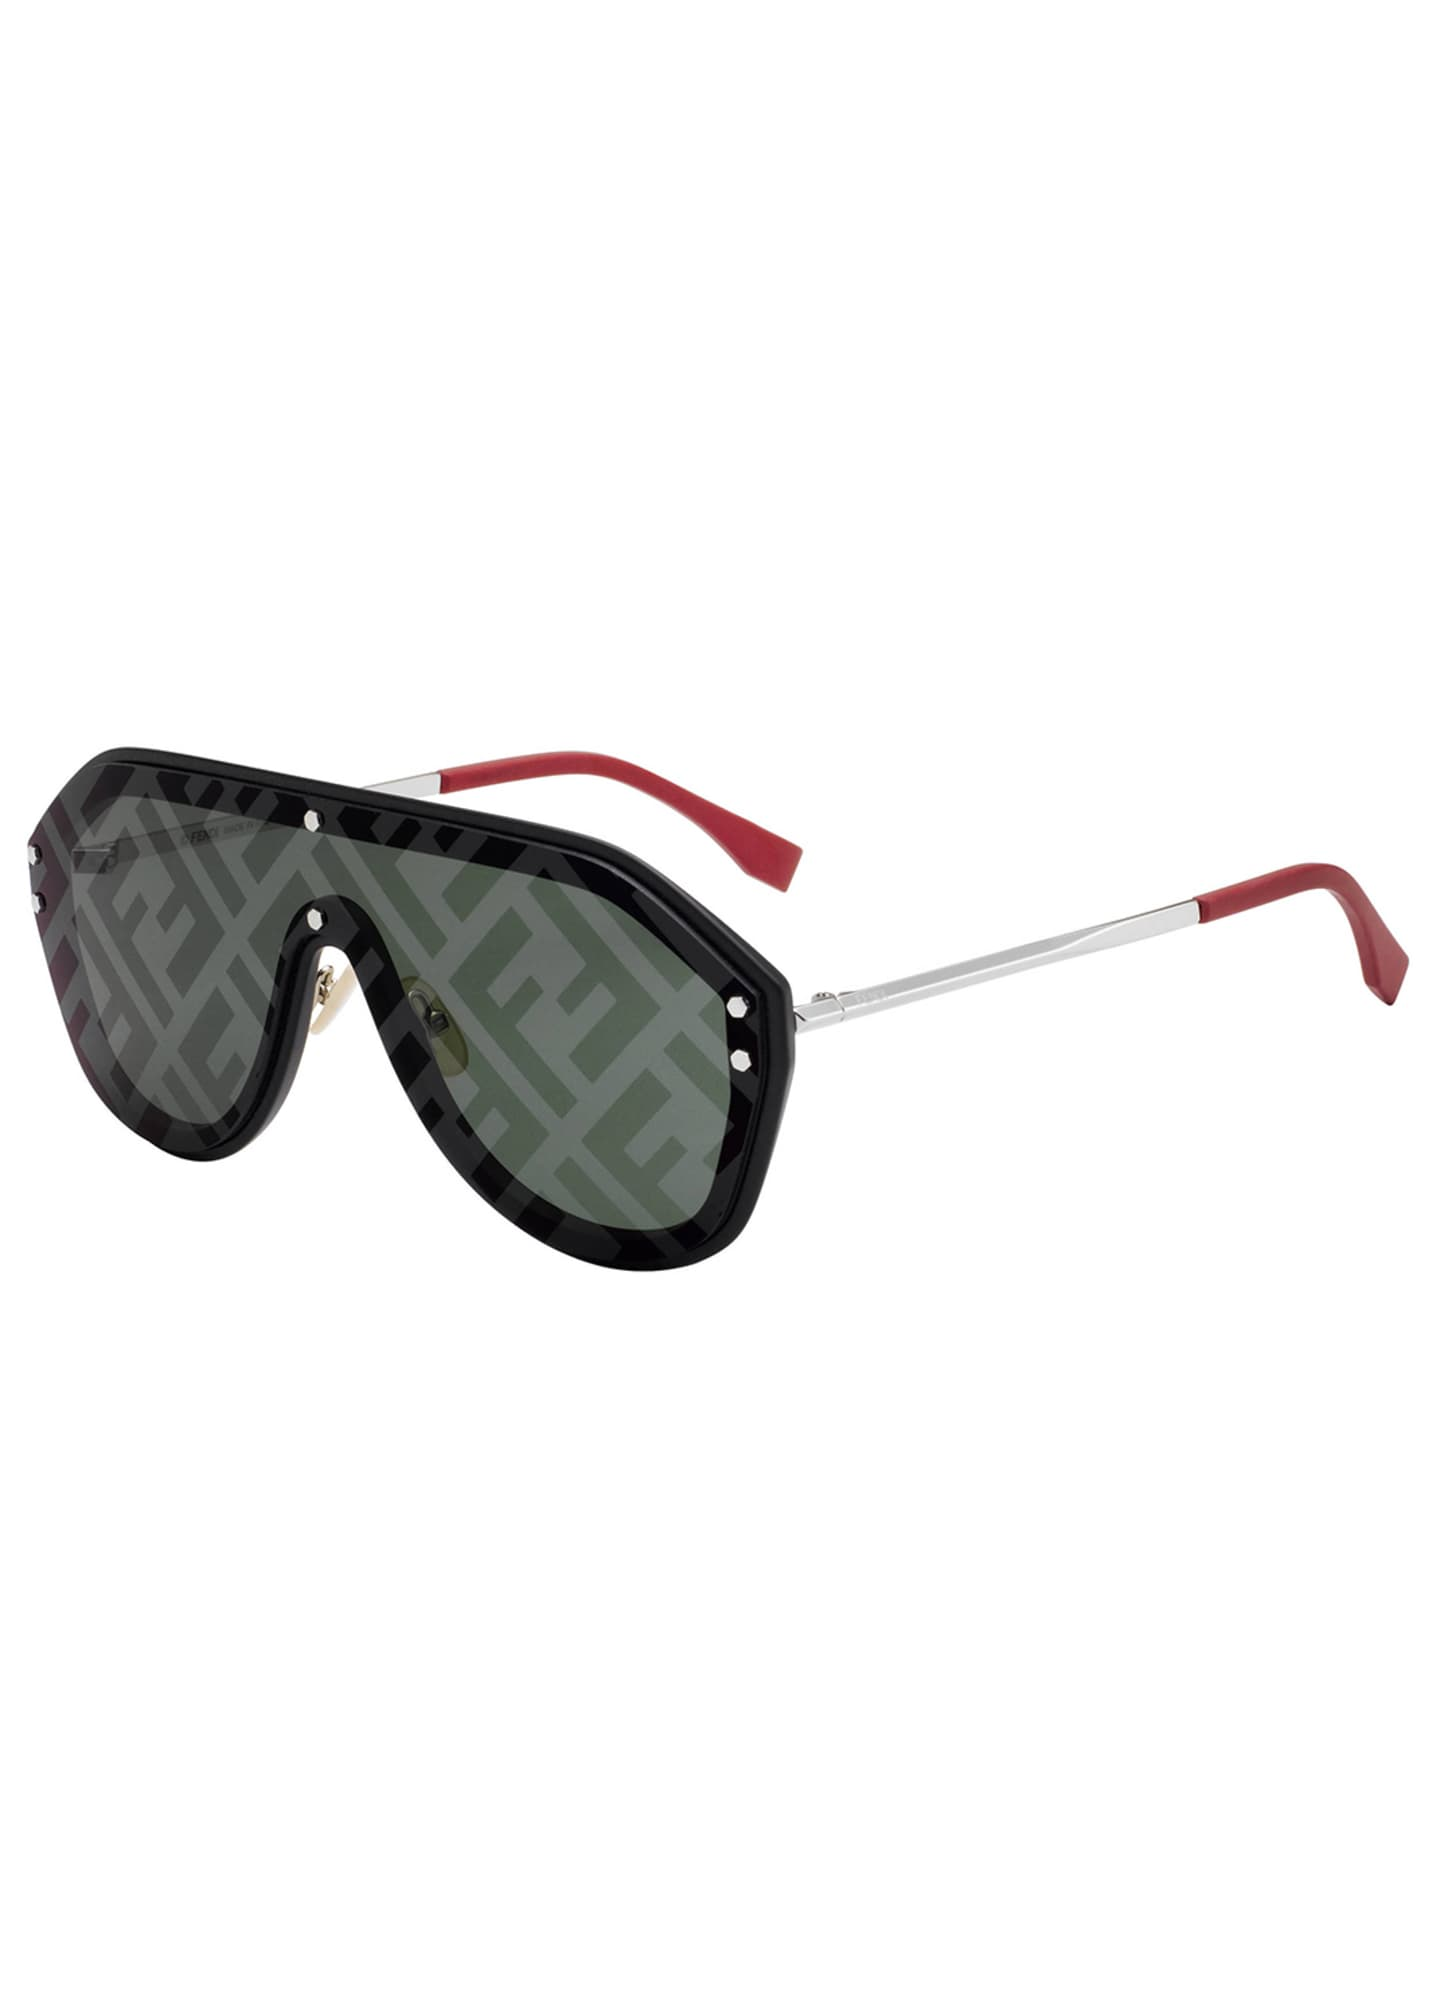 Image 1 of 1: Men's FF Shield Sunglasses